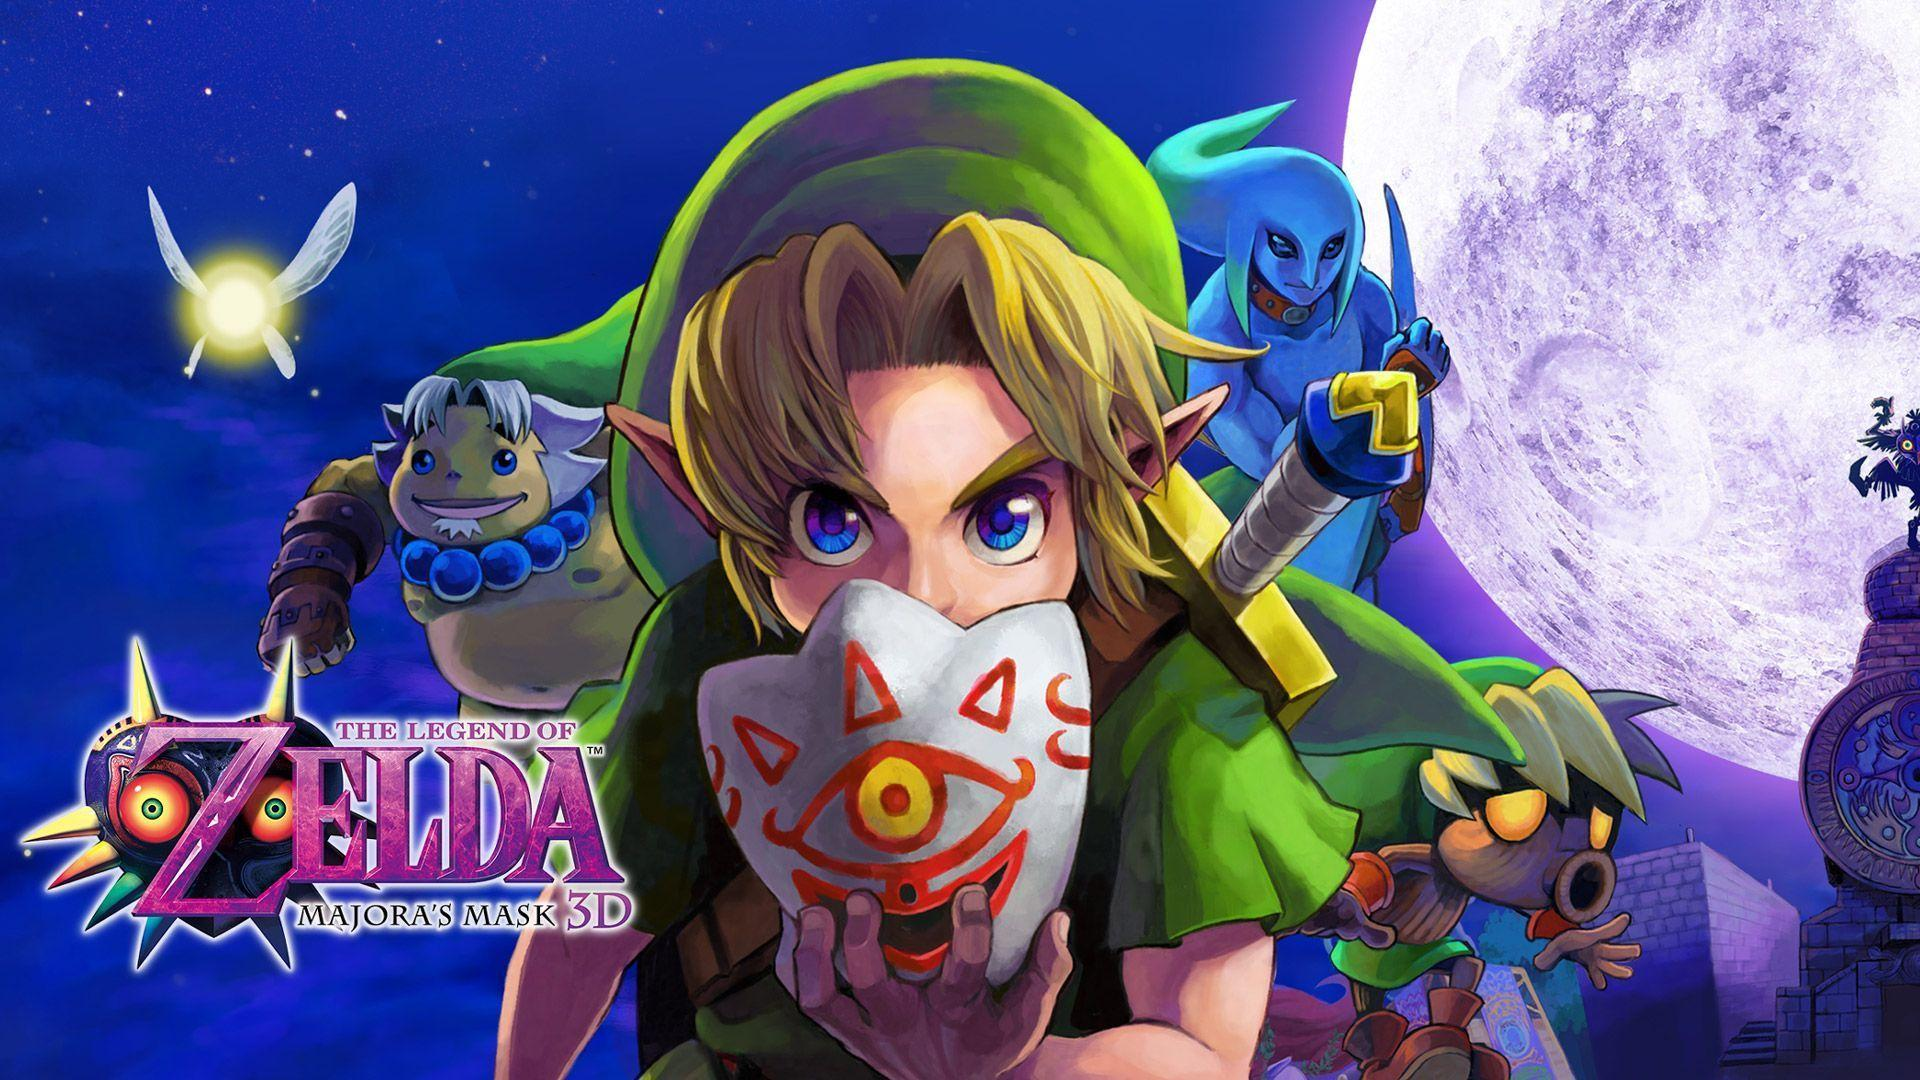 Zelda HD Wallpapers Group